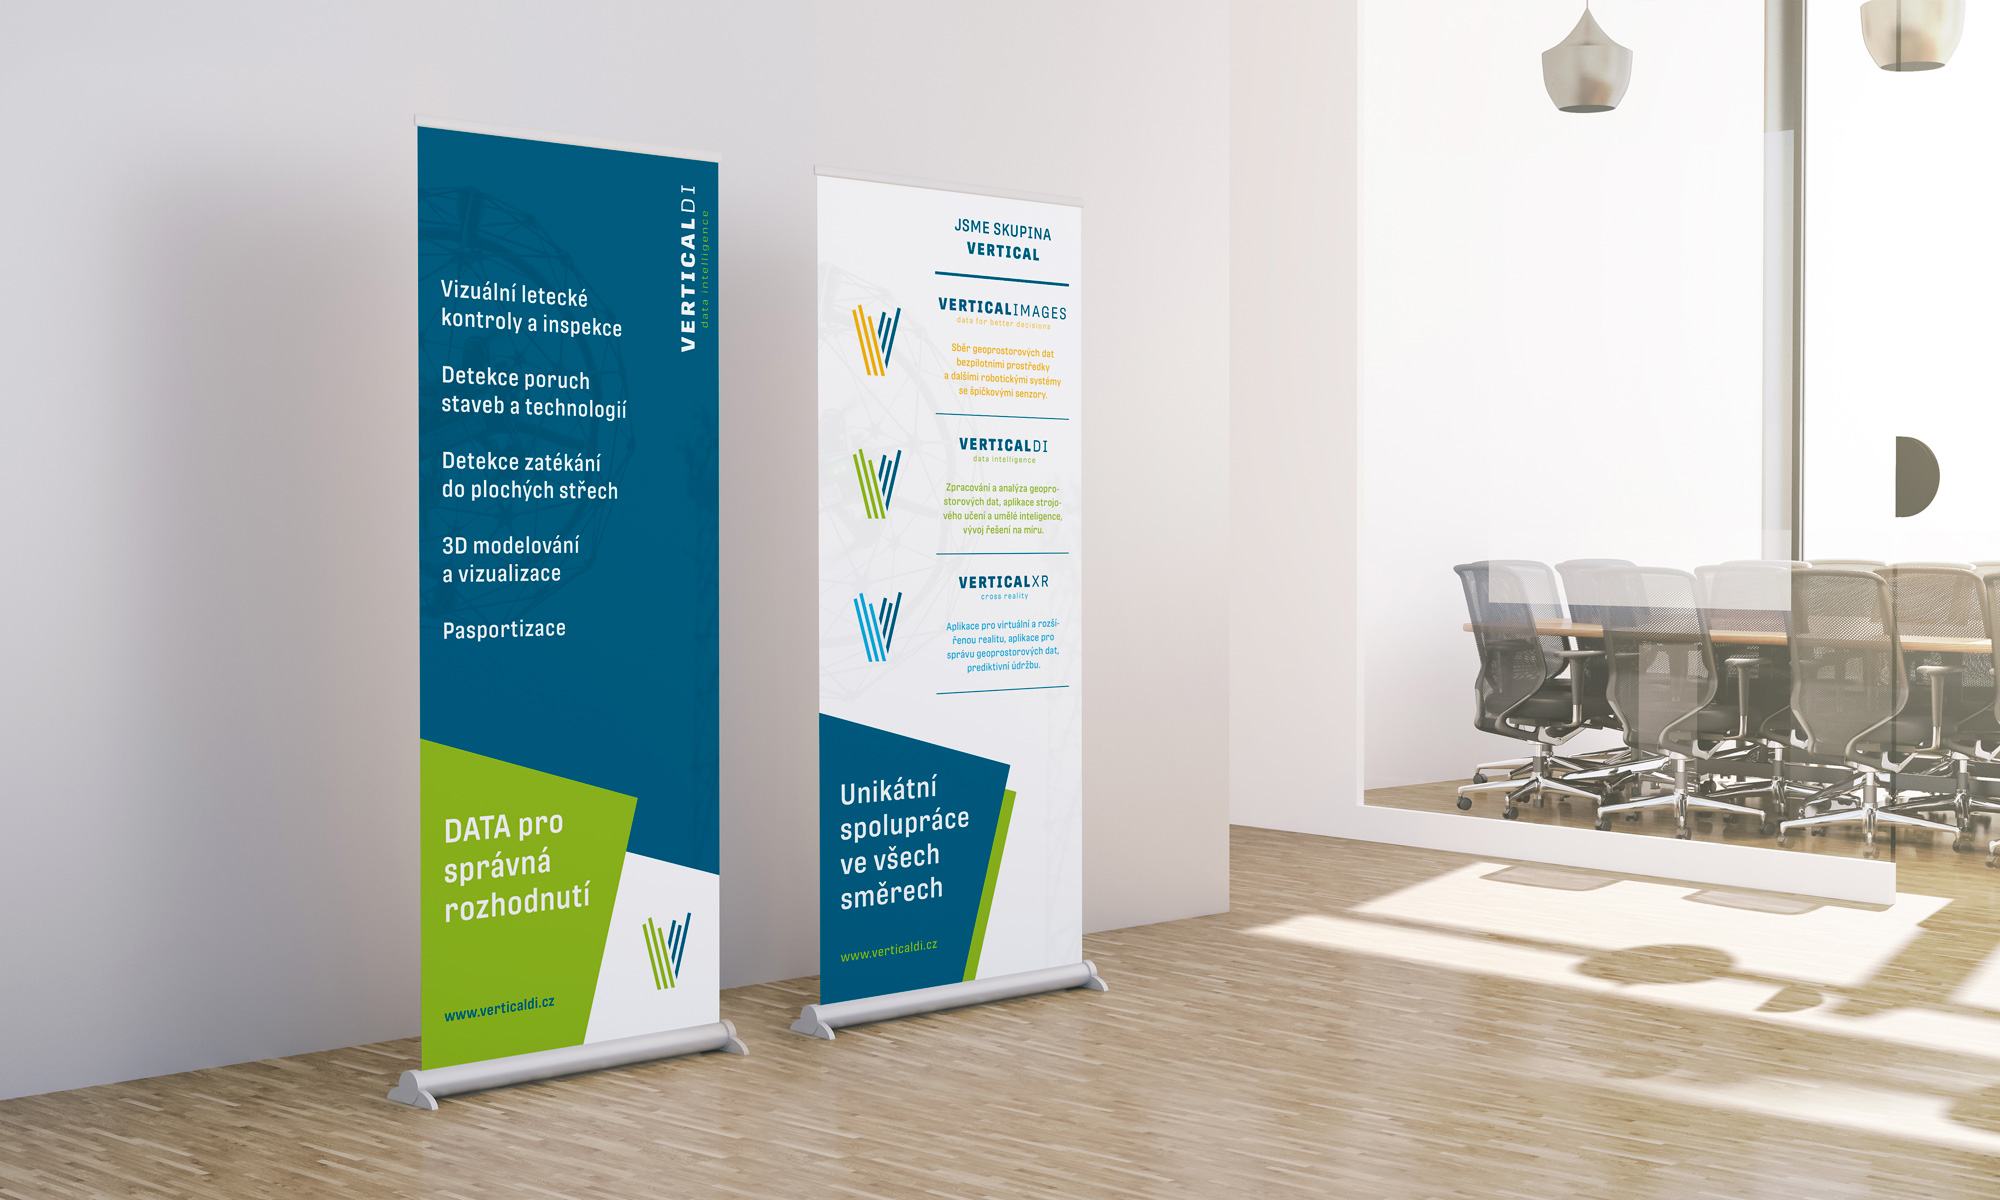 [album/Products_Model_Product/119/Vertical_roll-up_dvojice.jpg]